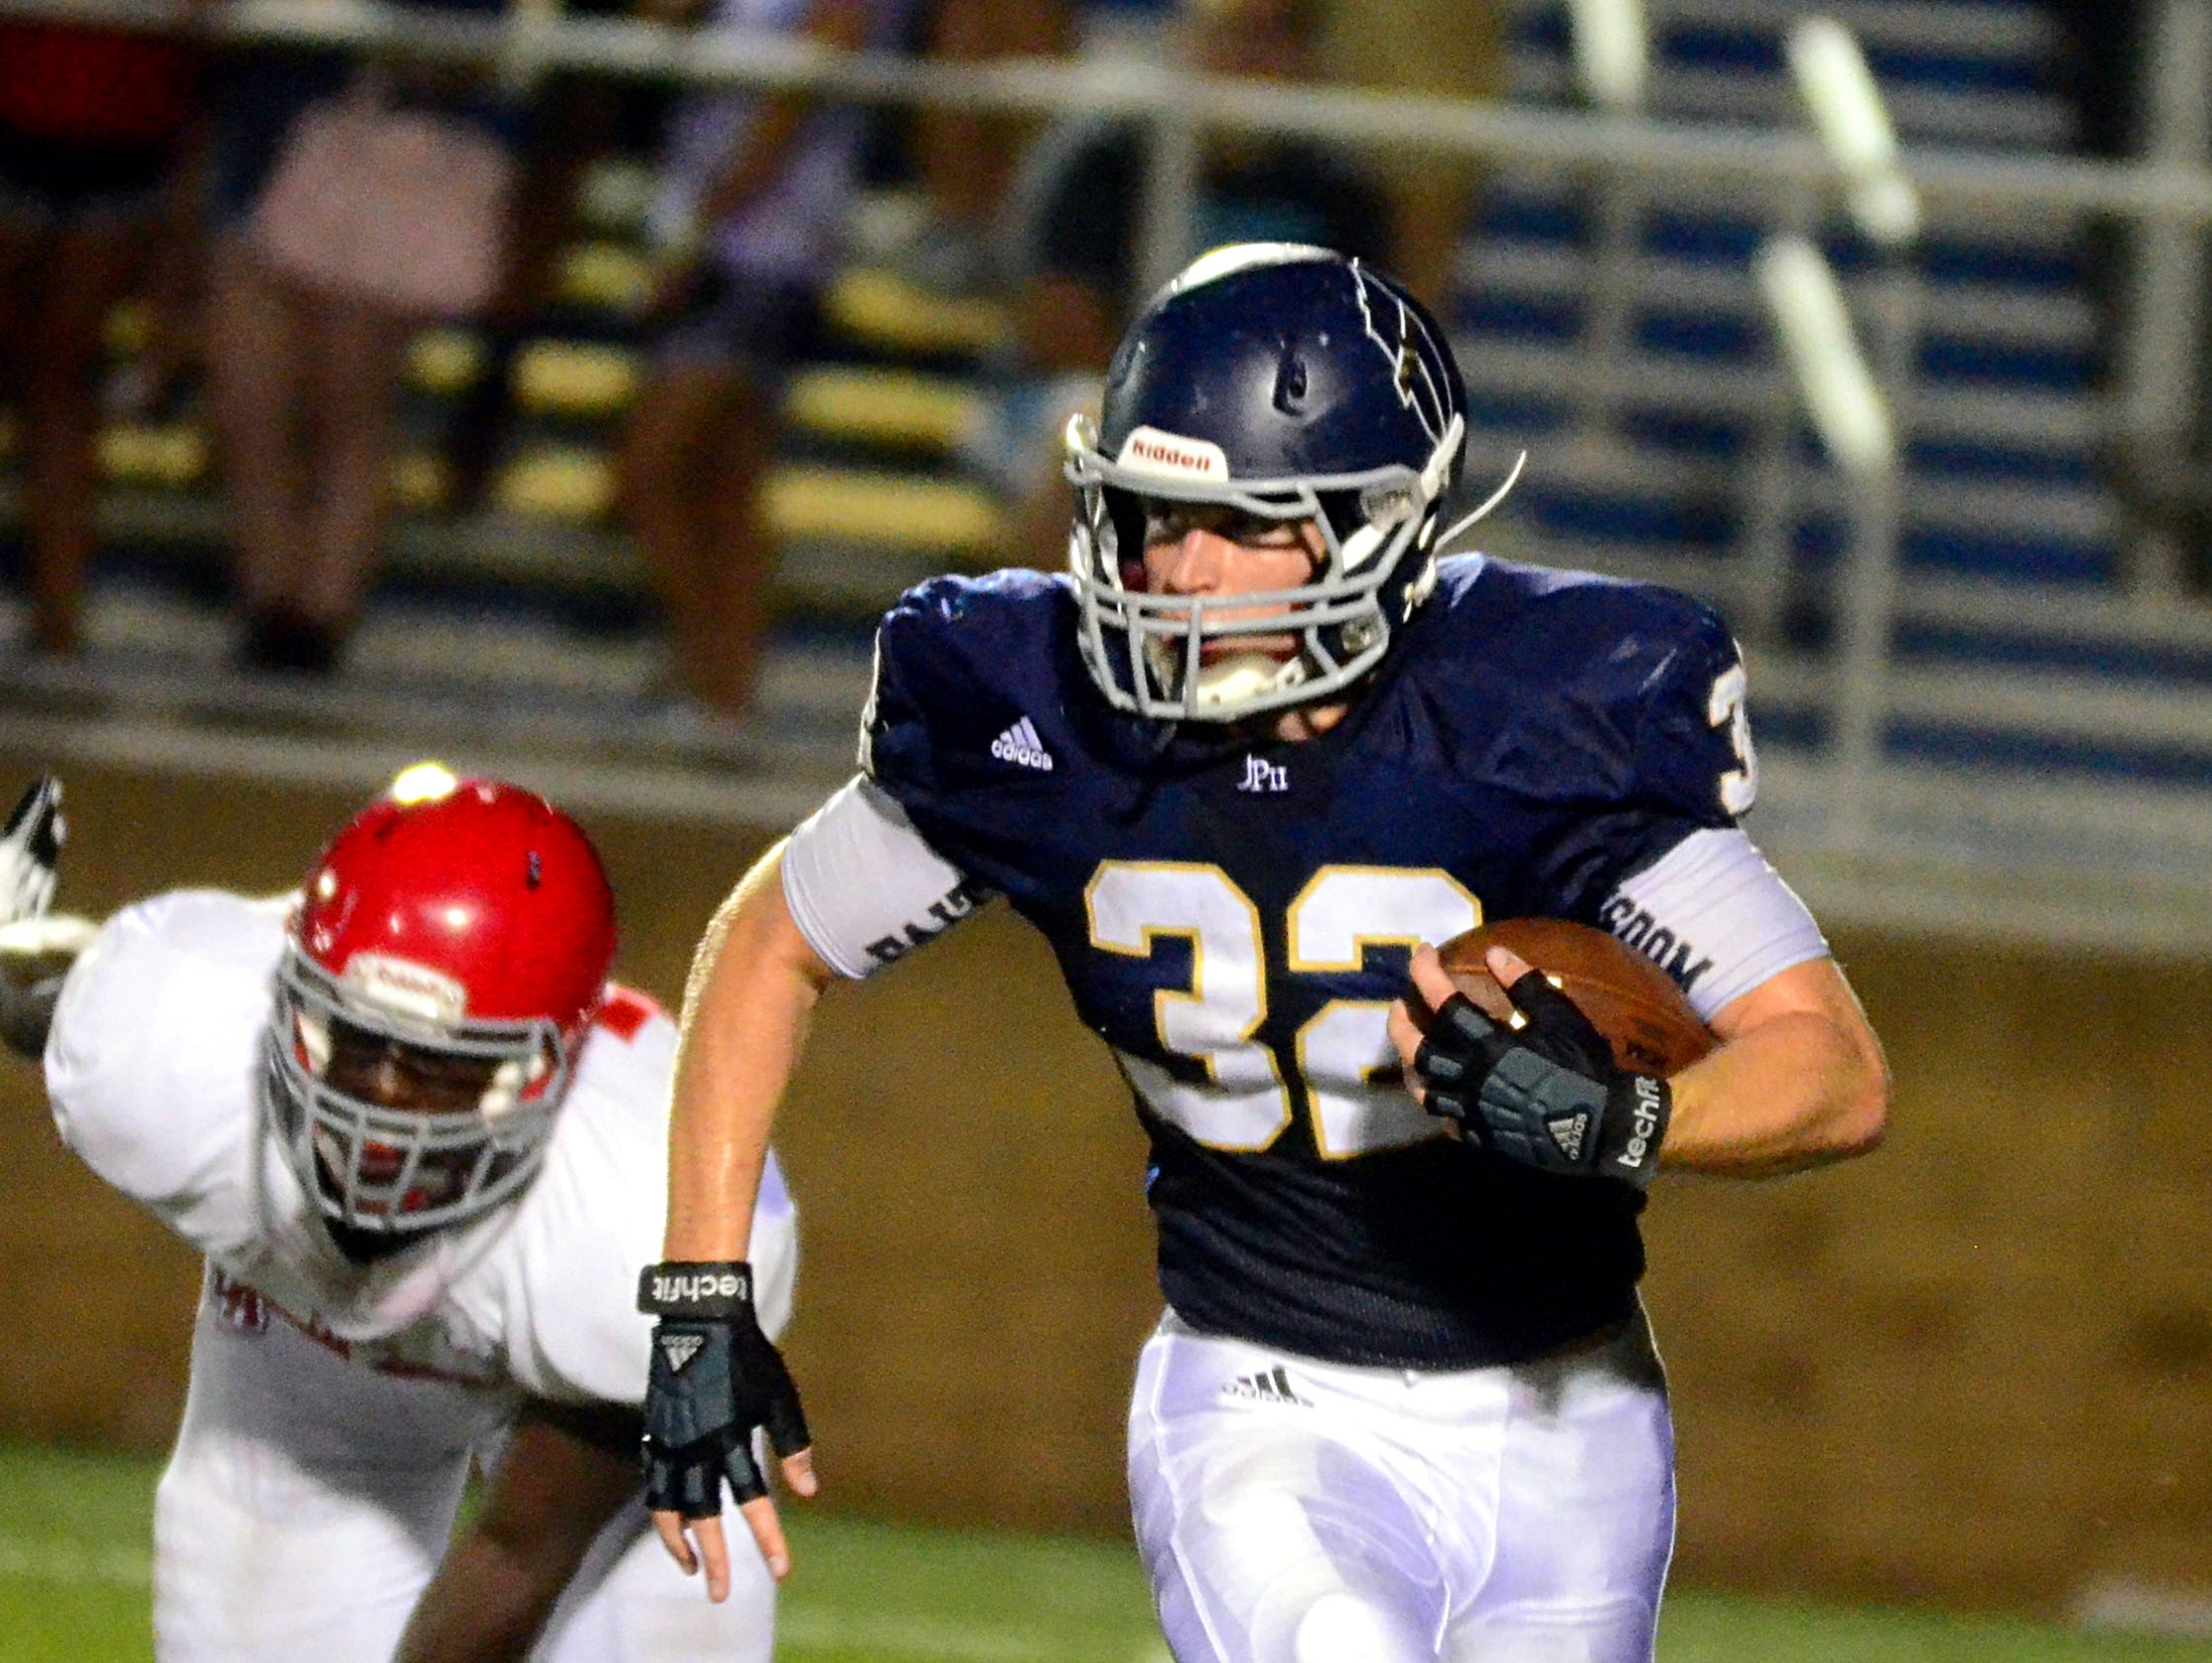 Senior Drew Bledsoe and the Pope John Paul II High football team captured a 21-19 victory at Baylor last Friday.